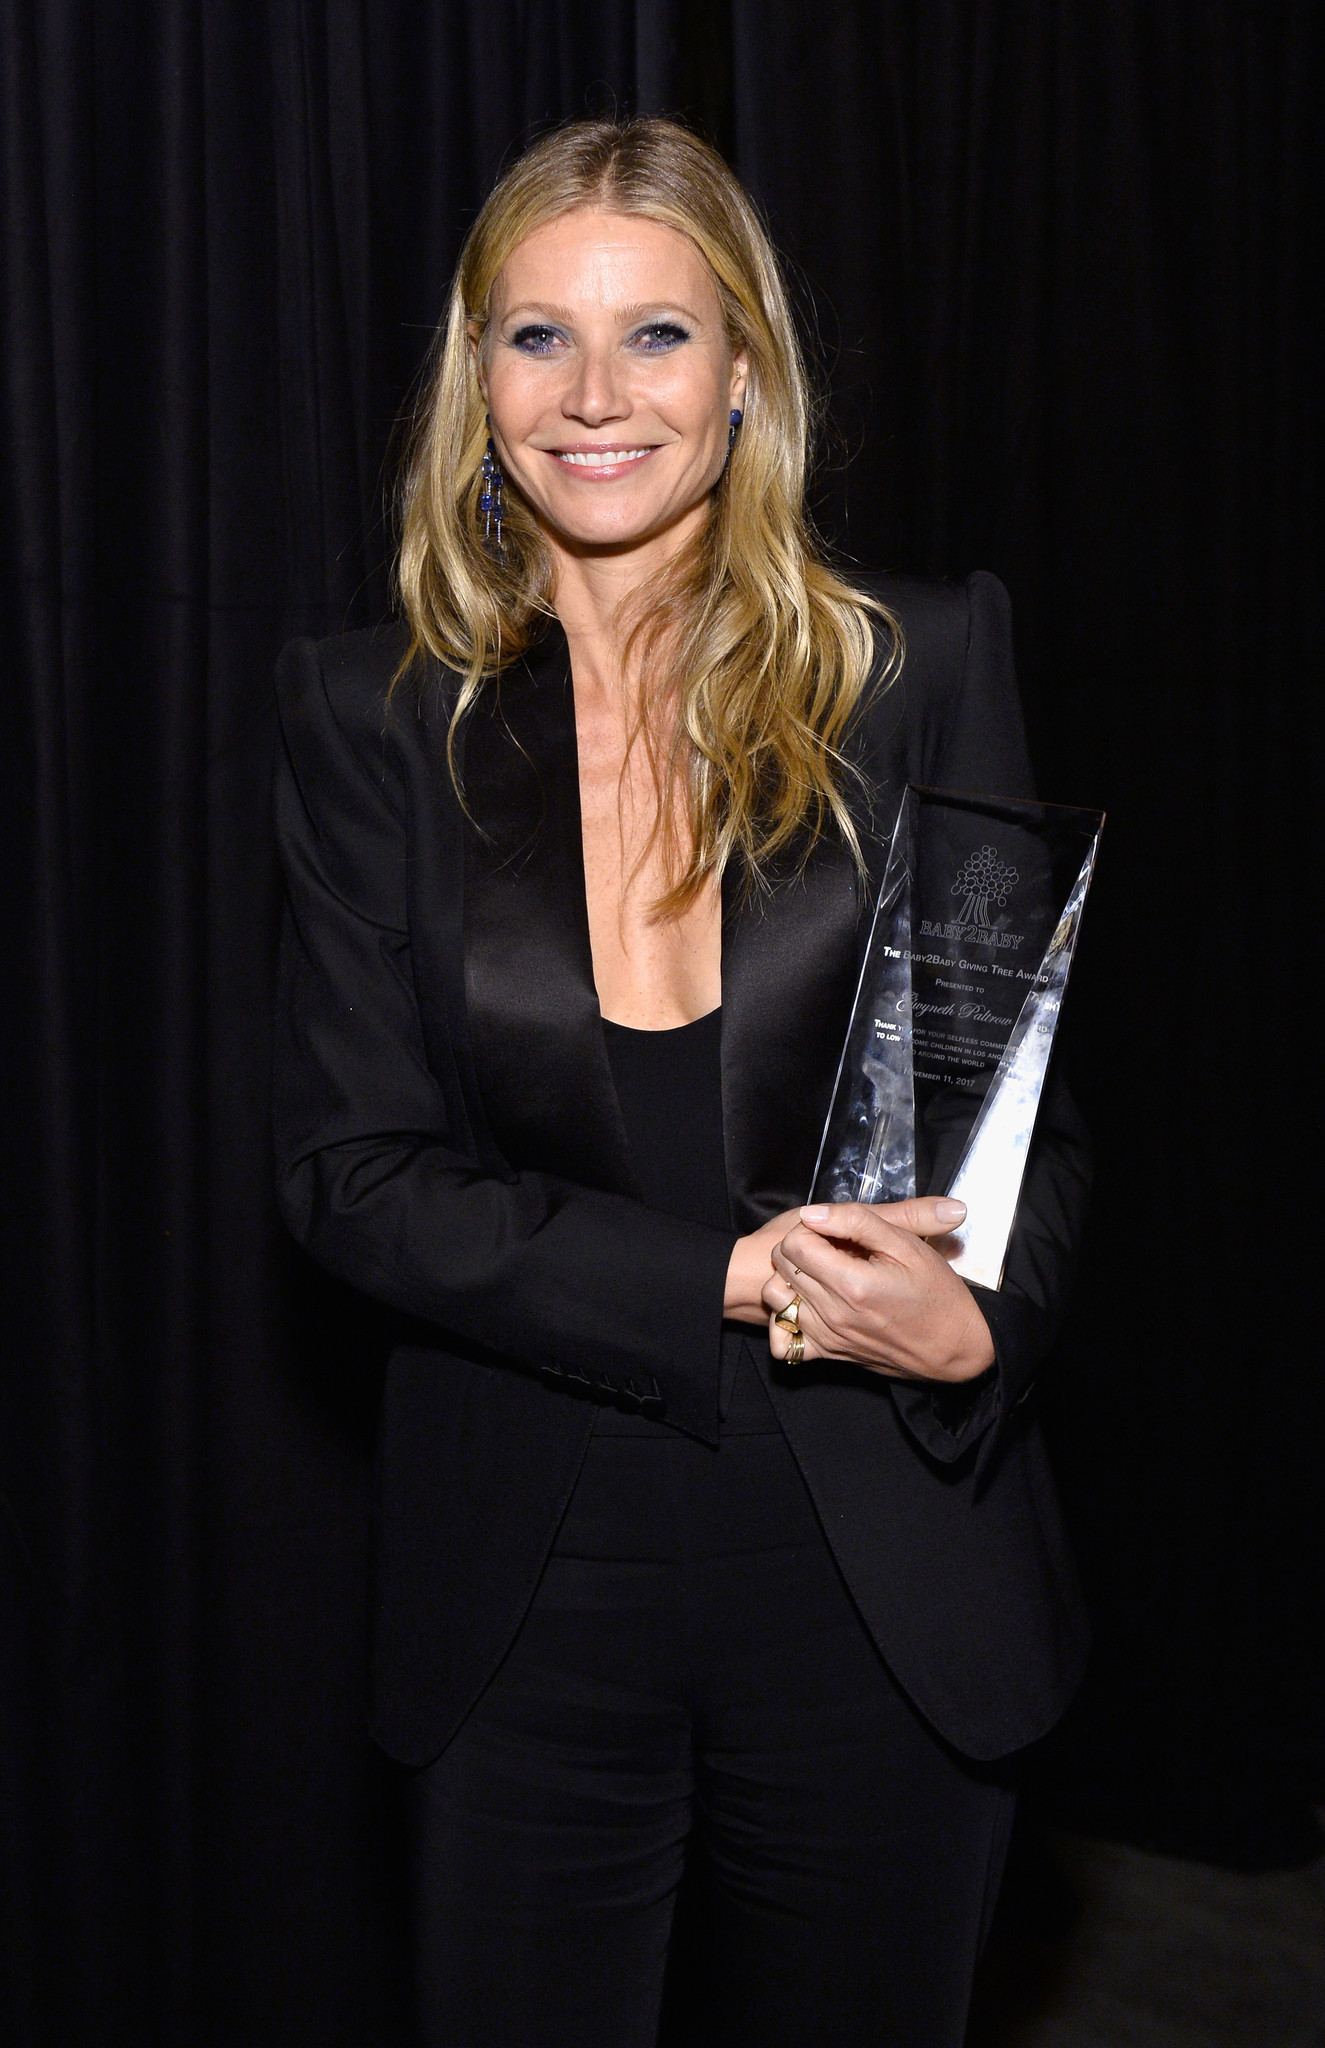 Gala honoree Gwyneth Paltrow holding the Giving Tree Award at the Baby2Baby Gala presented by Paul Mitchell.